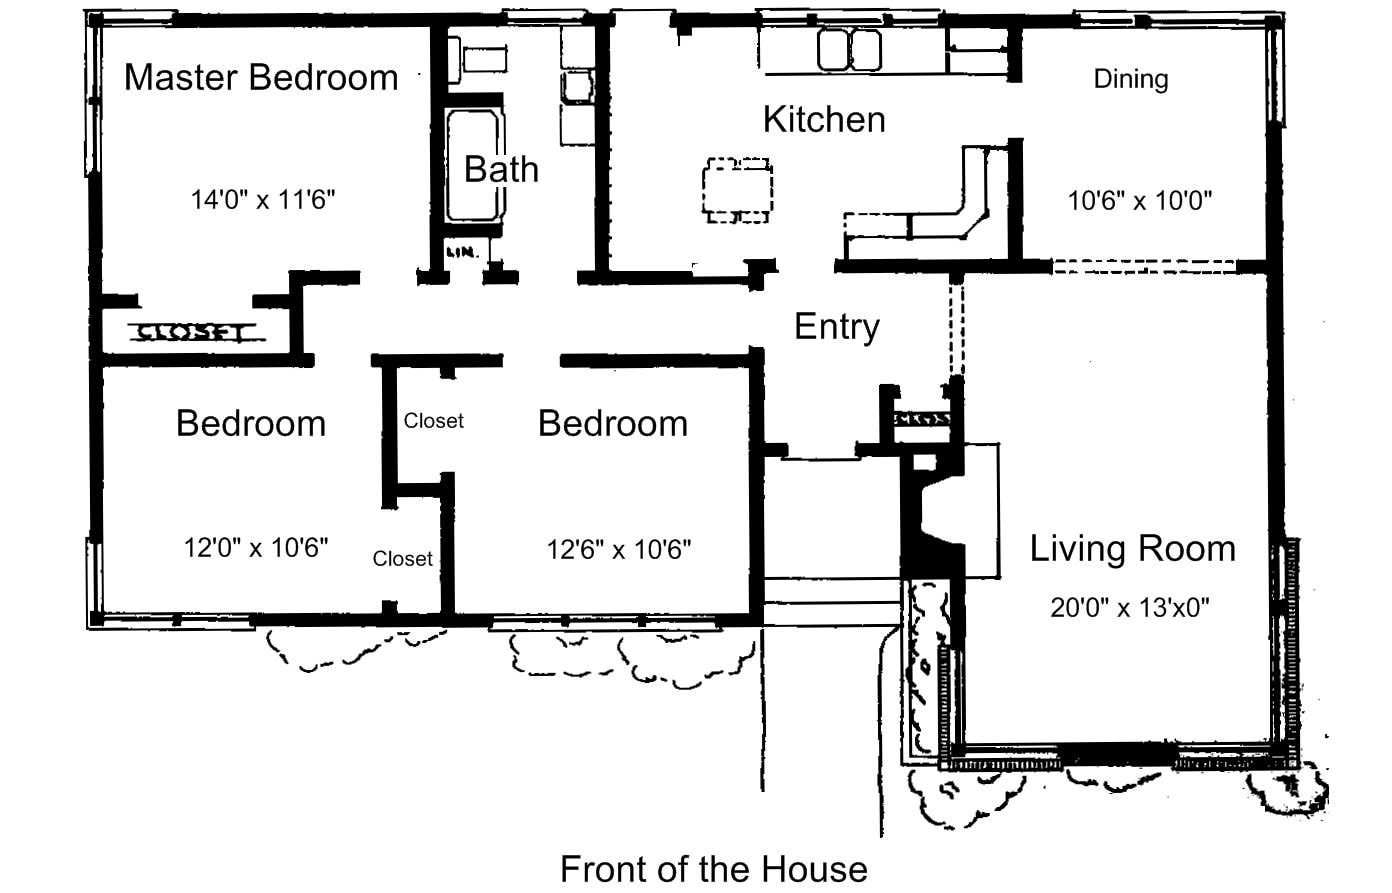 Free floor plans for small houses small house plans House blueprints free